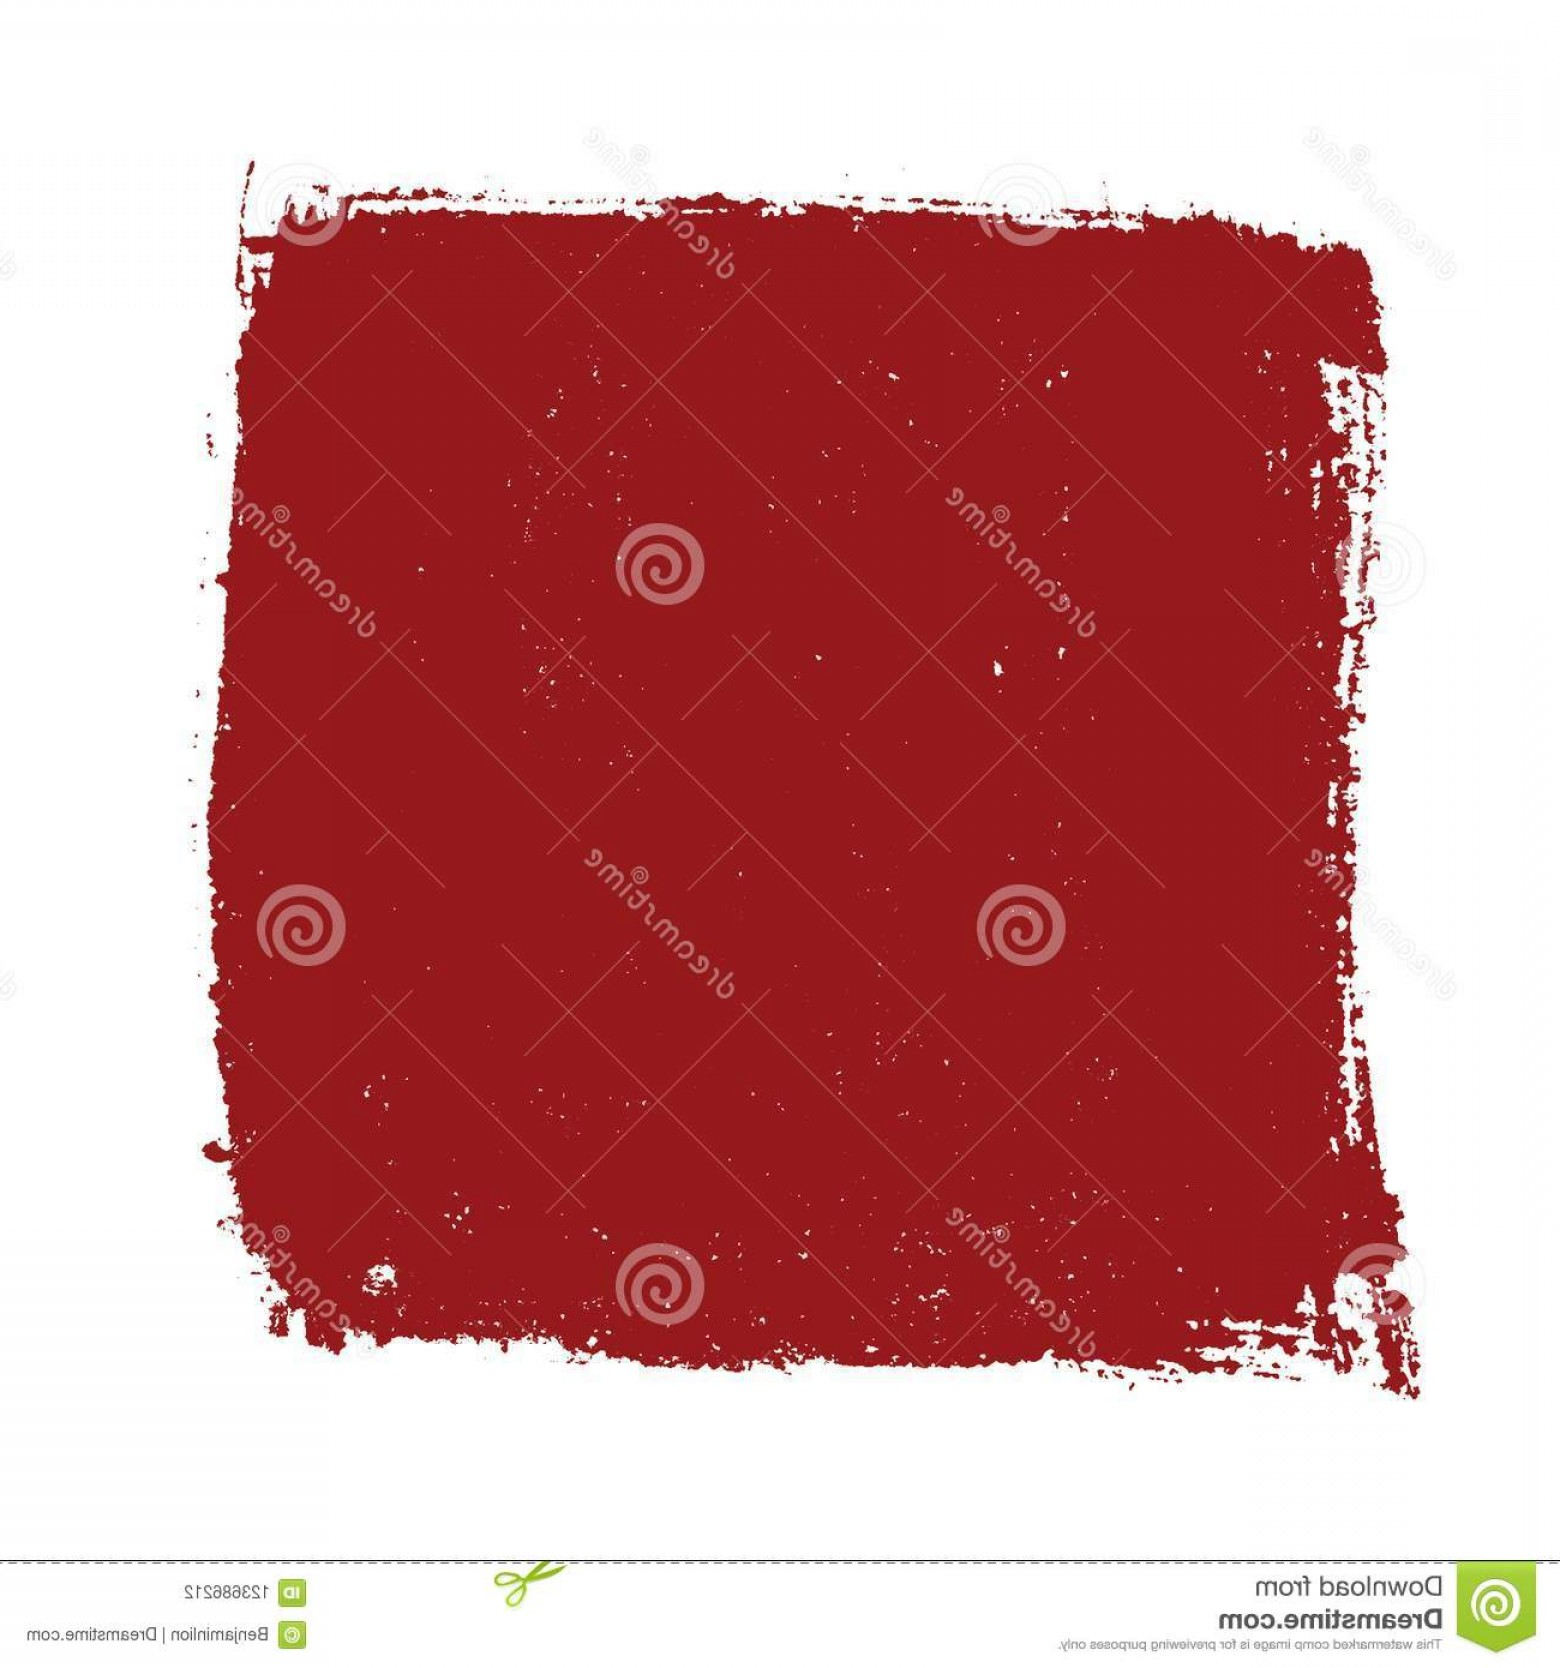 Distressed Red Background Vector: Distressed Bold Red Isolated Banner Texture Paint Brush Background Empty Design Element Grunge Overlay Mockup Original Logo Blank Image